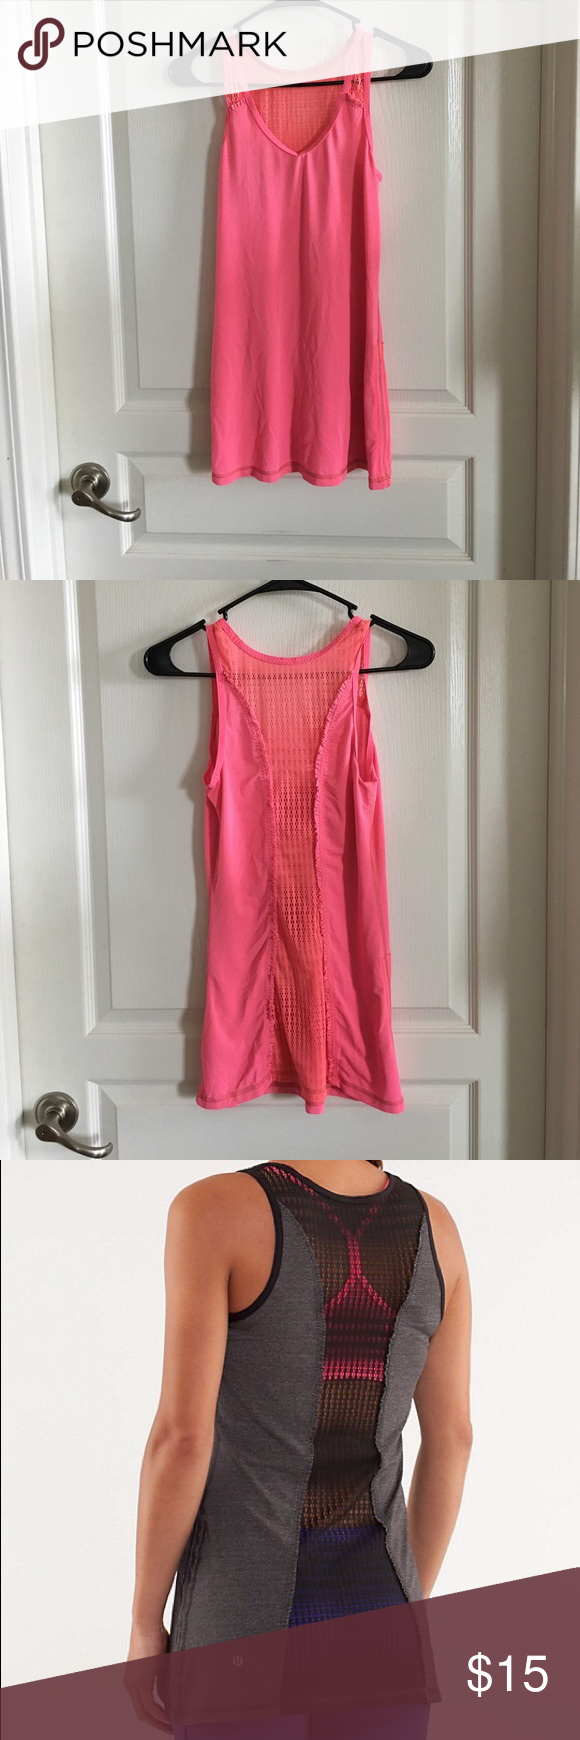 Lululemon Run: Tie and Fly Tank Sz 4 Lightweight mesh ruffle back tank with cinchable draw cords for customized fit. In excellent used condition. Only flaw is that logo fell off in the wash and is priced accordingly. No trades or PayPal. lululemon athletica Tops Tank Tops